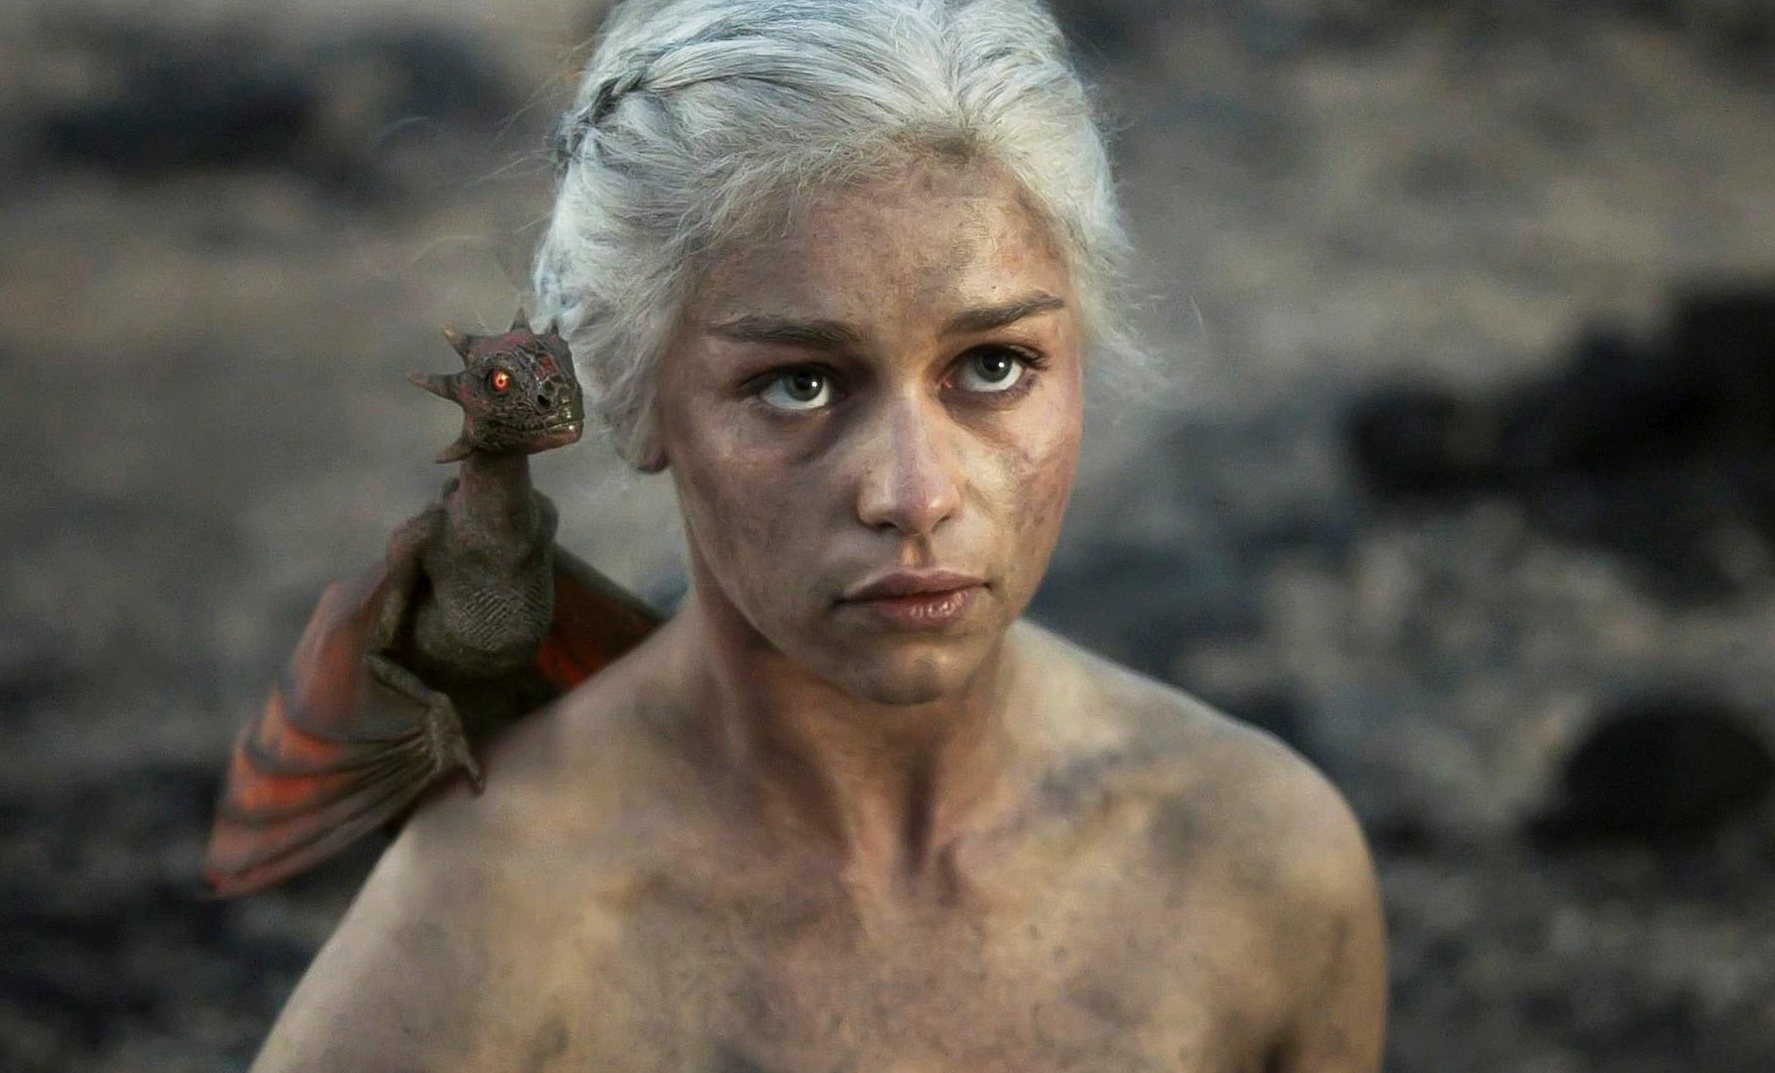 Game Of Thrones Season Six Script May Have Been Leaked Screen Shot 2015 06 24 at 16.53.57